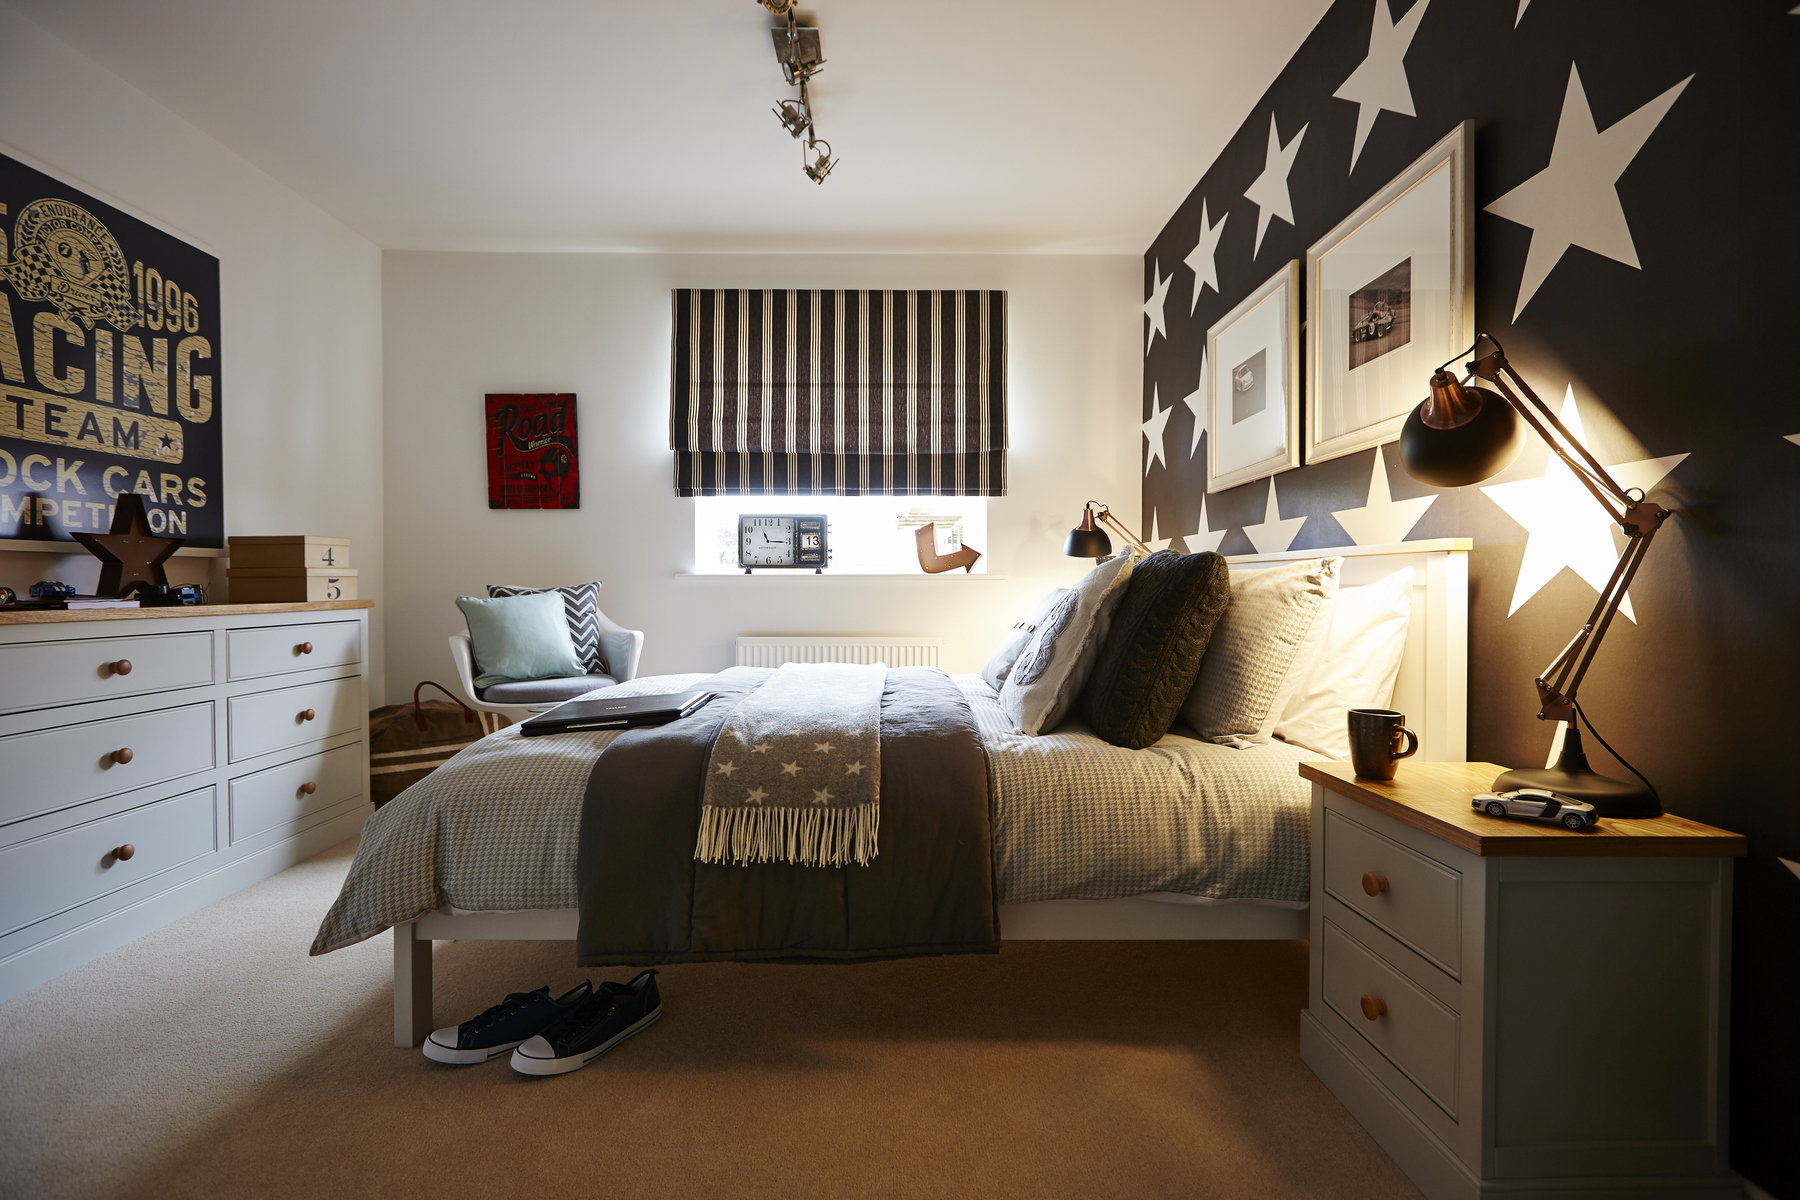 tw_westmids_nursery_meadow_barford_pa49_thornford_bedroom_2